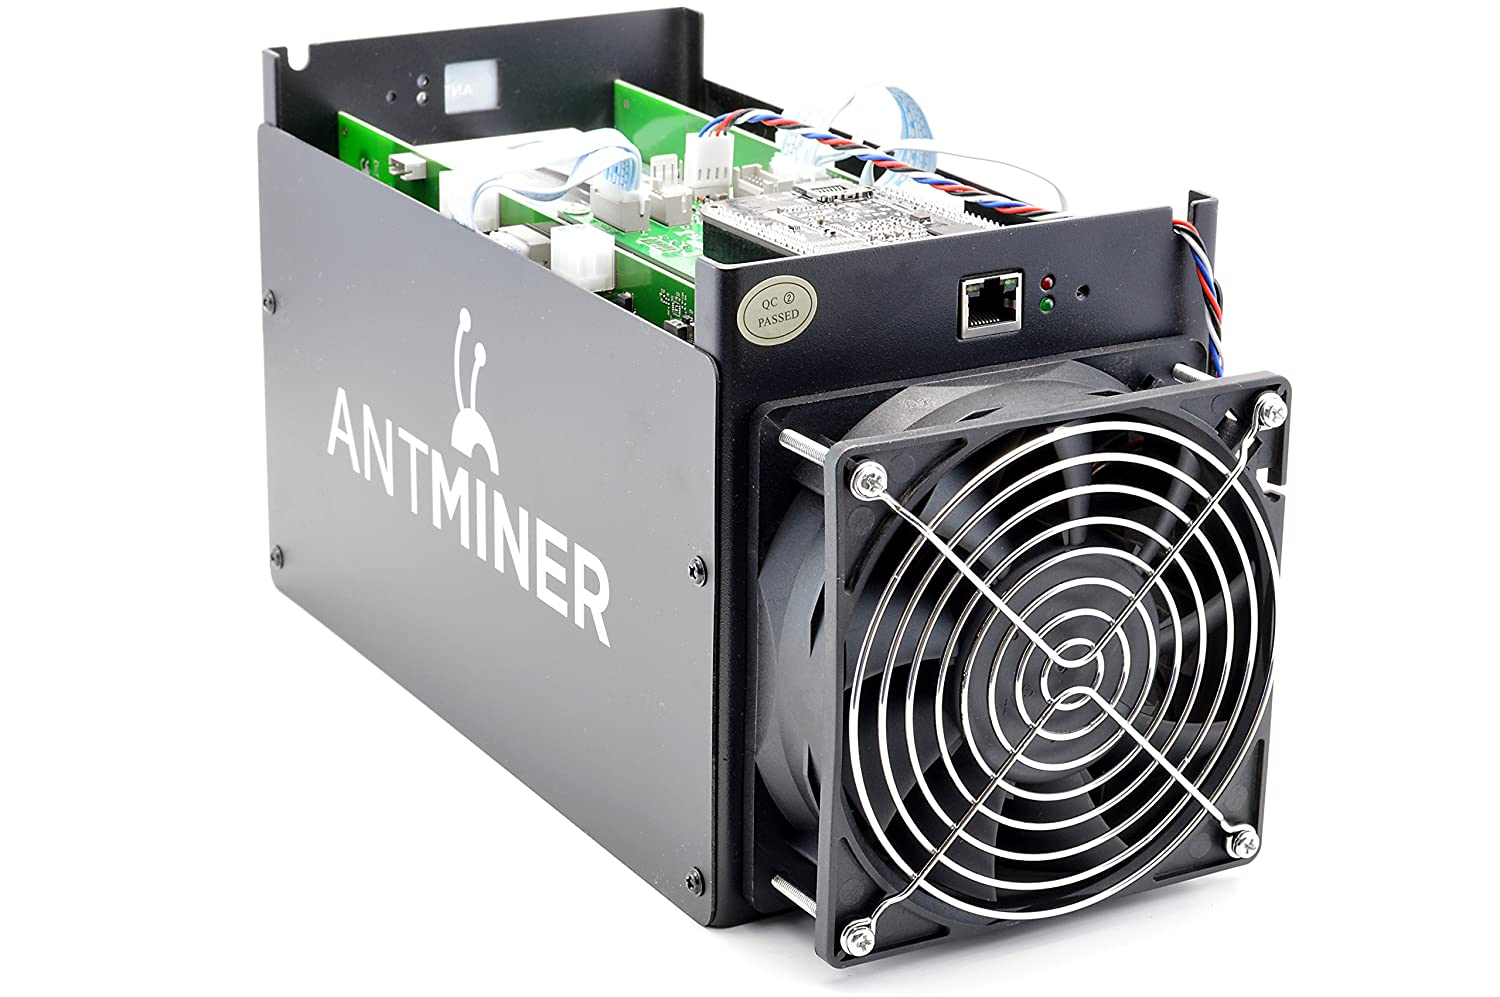 Top Bitcoin mining hardware created in recent years